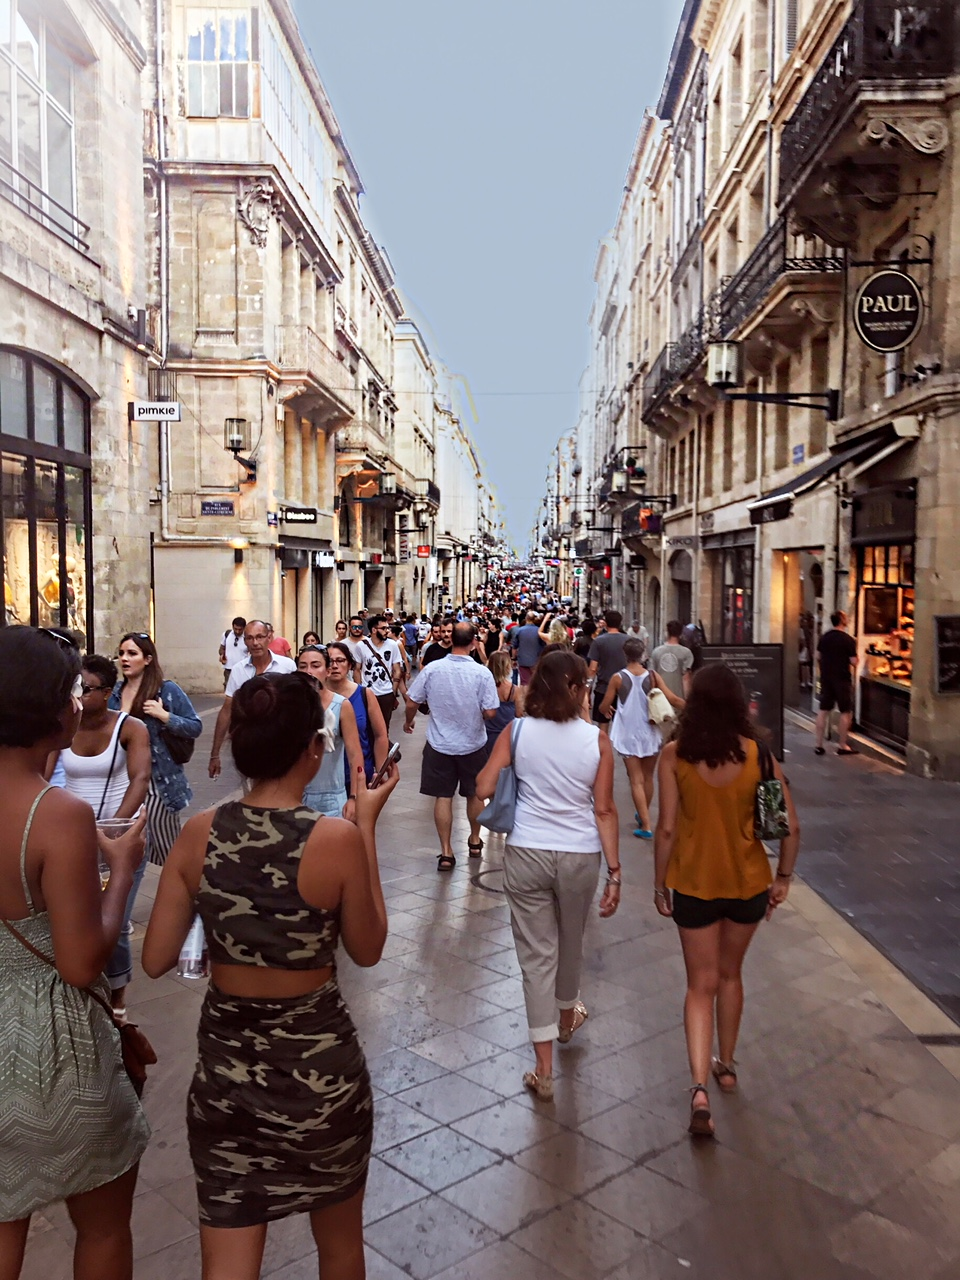 """Rue Sainte-Catherine - Oh la la the French sure take the term """"Shop till you Drop"""" seriously on this street. The Rue Sainte-Catherine in Bordeaux has been coined the longest pedestrian street in Europe. This street of 1.2 KM is the main shopping street of Bordeaux. It is best to start at the tip-top where the Intercontinental Grand Hotel is located and from there you will see the infamous Apple Store, once you see that you will find yourself strolling down to the Galleria Lafayette along with many, many and I mean many more stores. Ranging from cute petit boutiques to big name French brands such as, Etam, Pimkie and Undiz, and I cannot forget to add an endless amount of bakeries you'll pass along with chocolate stores."""